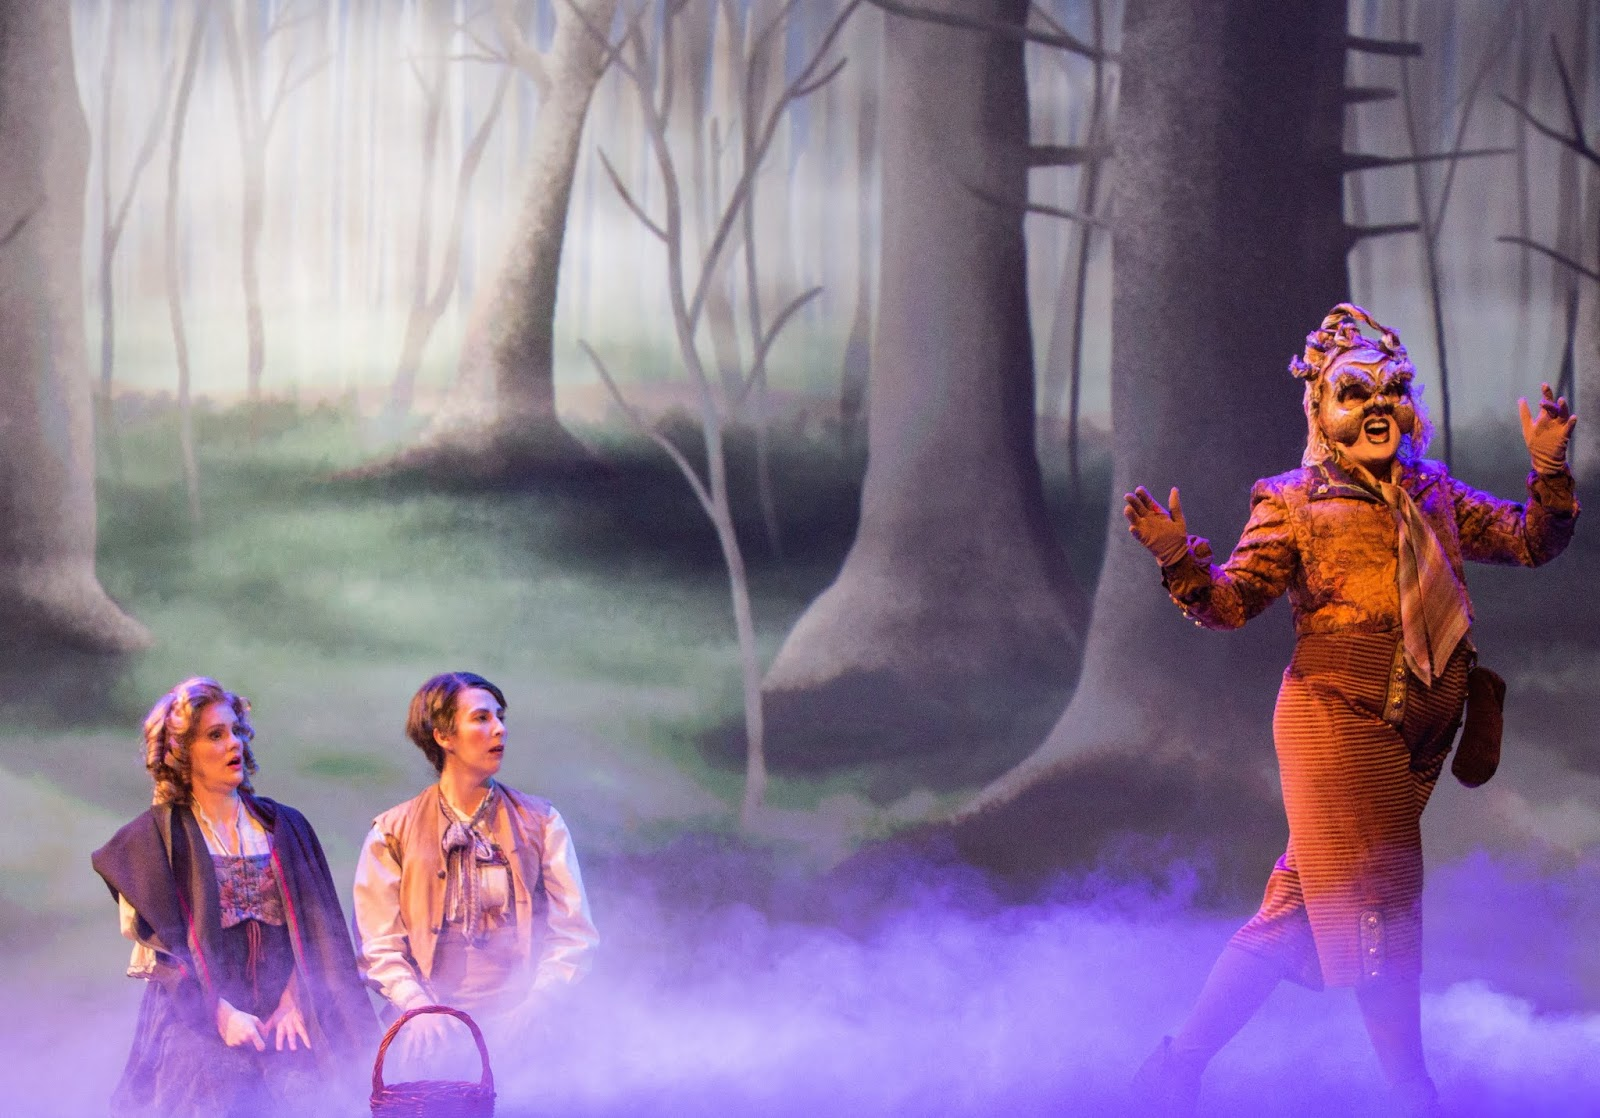 IN PERFORMANCE: (left to right) soprano JOANN MARTINSON DAVIS as Gretel, mezzo-soprano STEPHANIE FOLEY DAVIS as Hänsel, and soprano JORDAN WINSLOW as Der Sandmännchen in Greensboro Opera's March 2019 production of Engelbert Humperdinck's HÄNSEL UND GRETEL [Photograph © by VanderVeen Photographers]